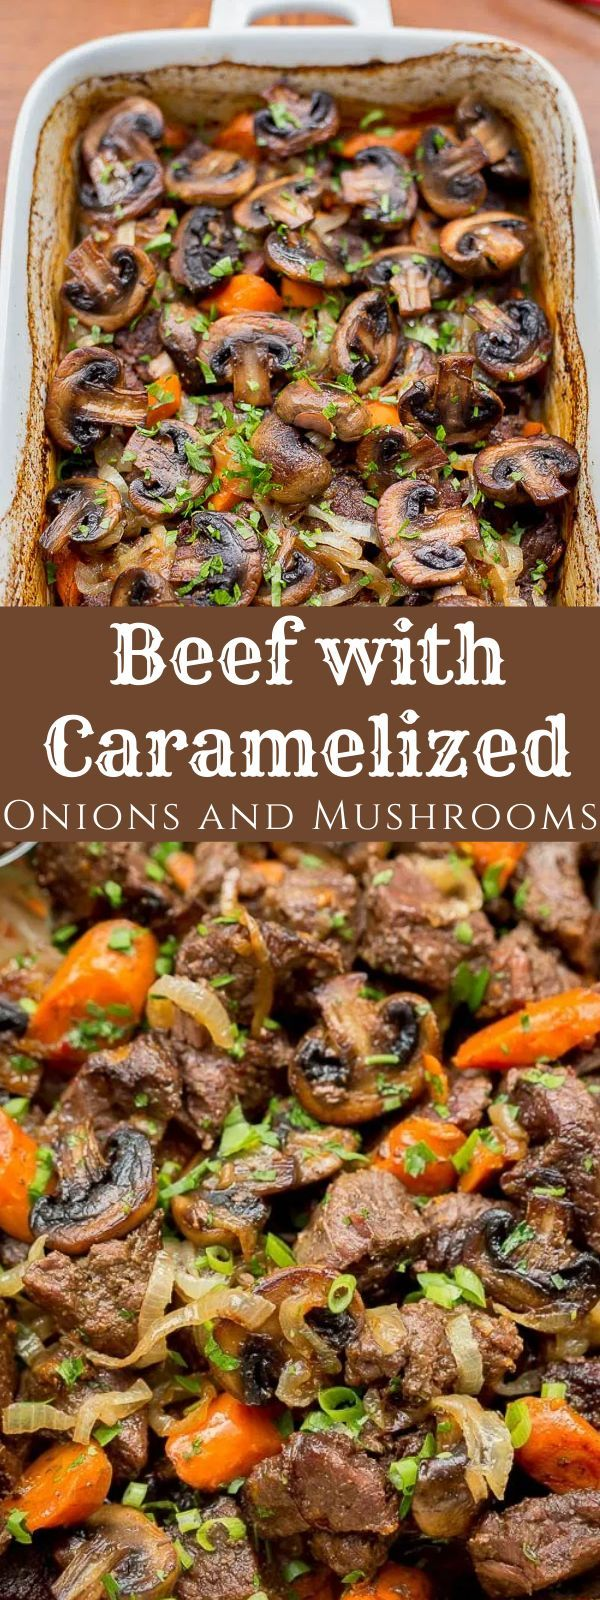 Beef with Caramelized Onions and Mushrooms - Let the Baking Begin!